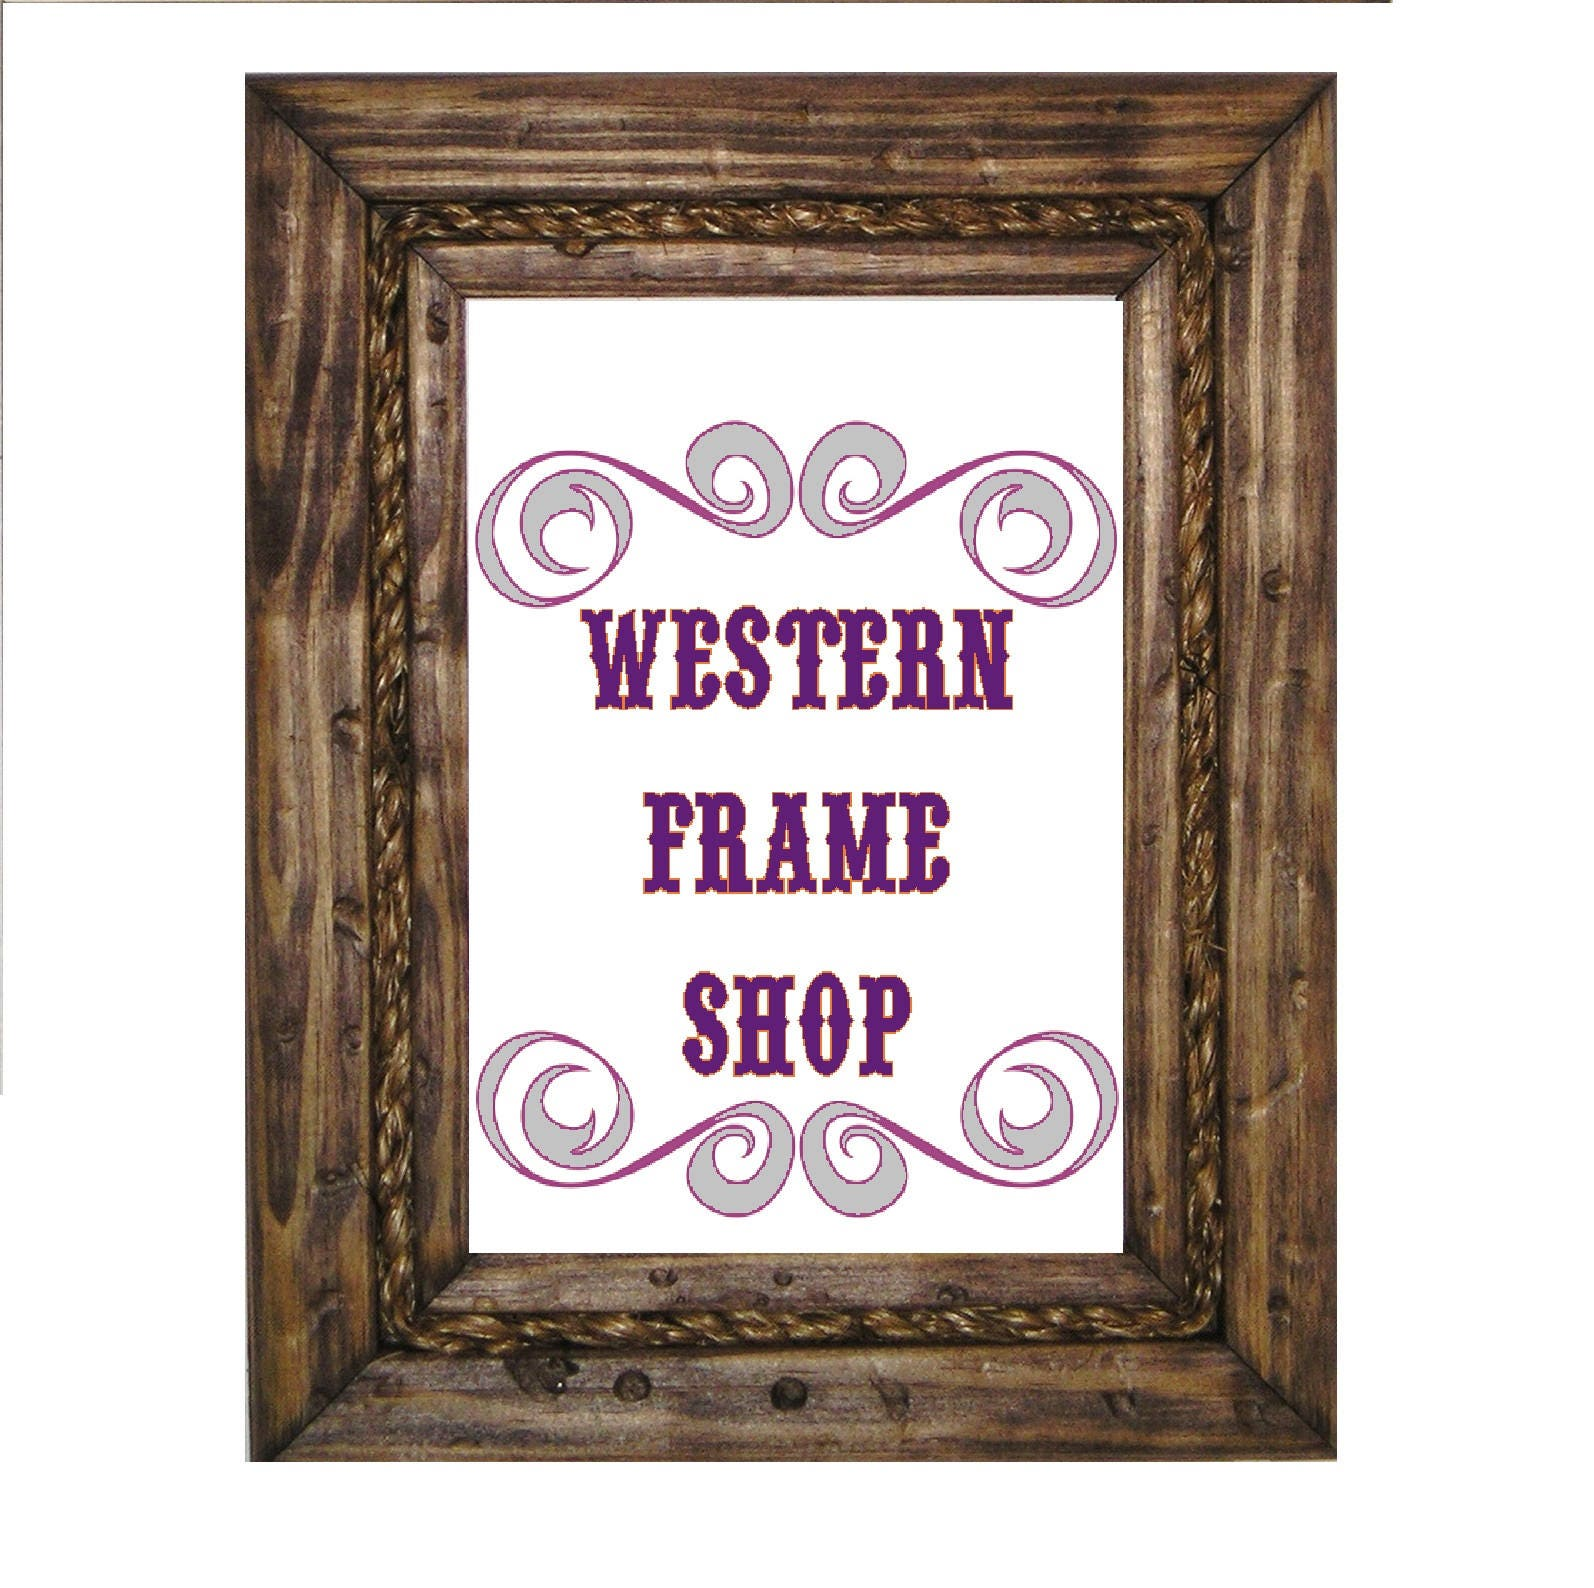 Nautical Rope Picture Frame. Cowboy Wood & Rope Picture Frame.   Etsy